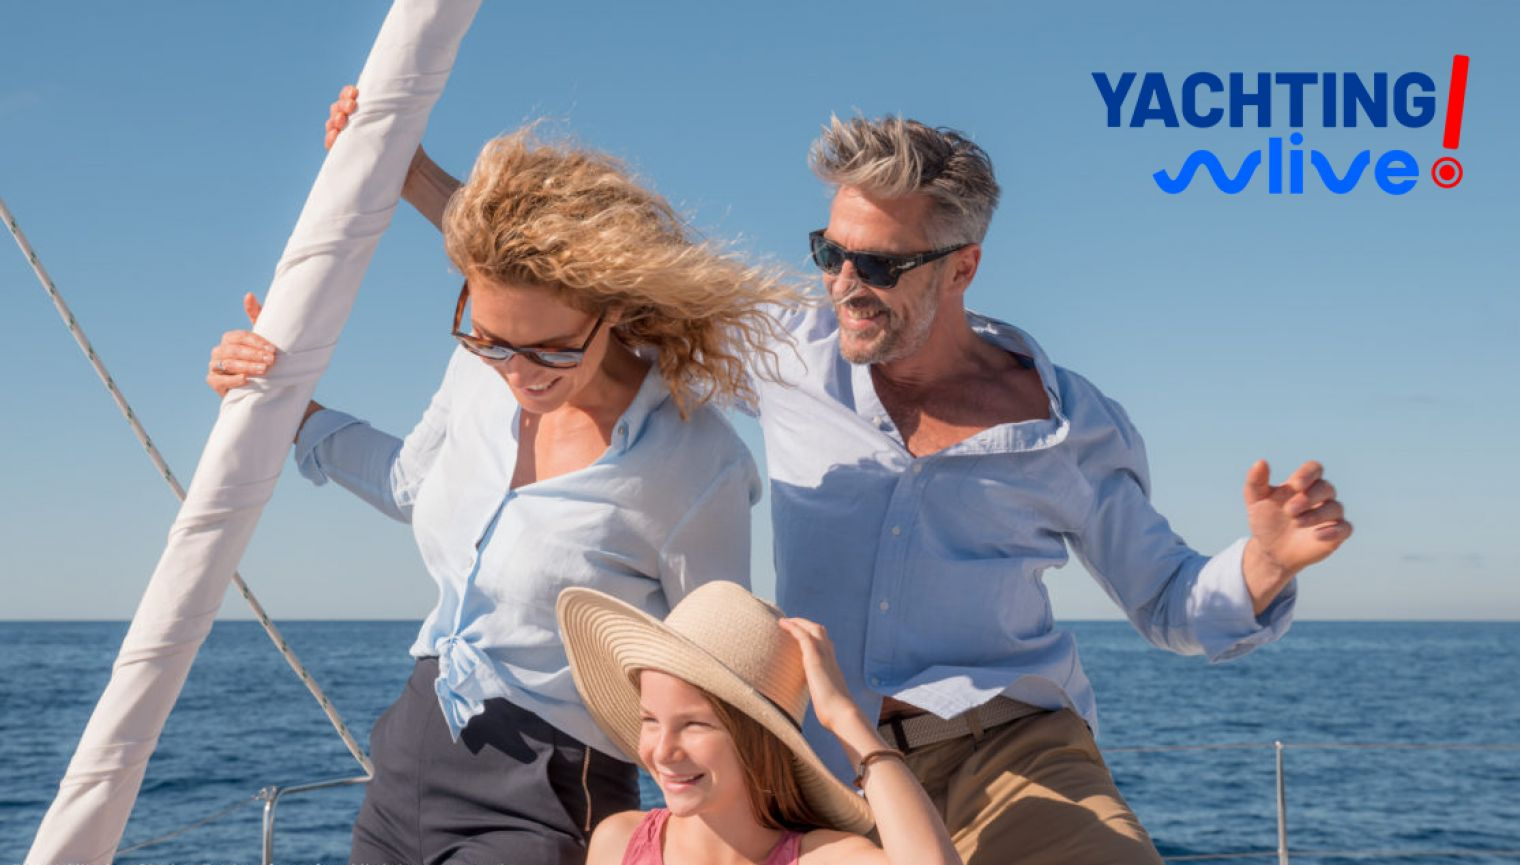 Take part in Yachting Live